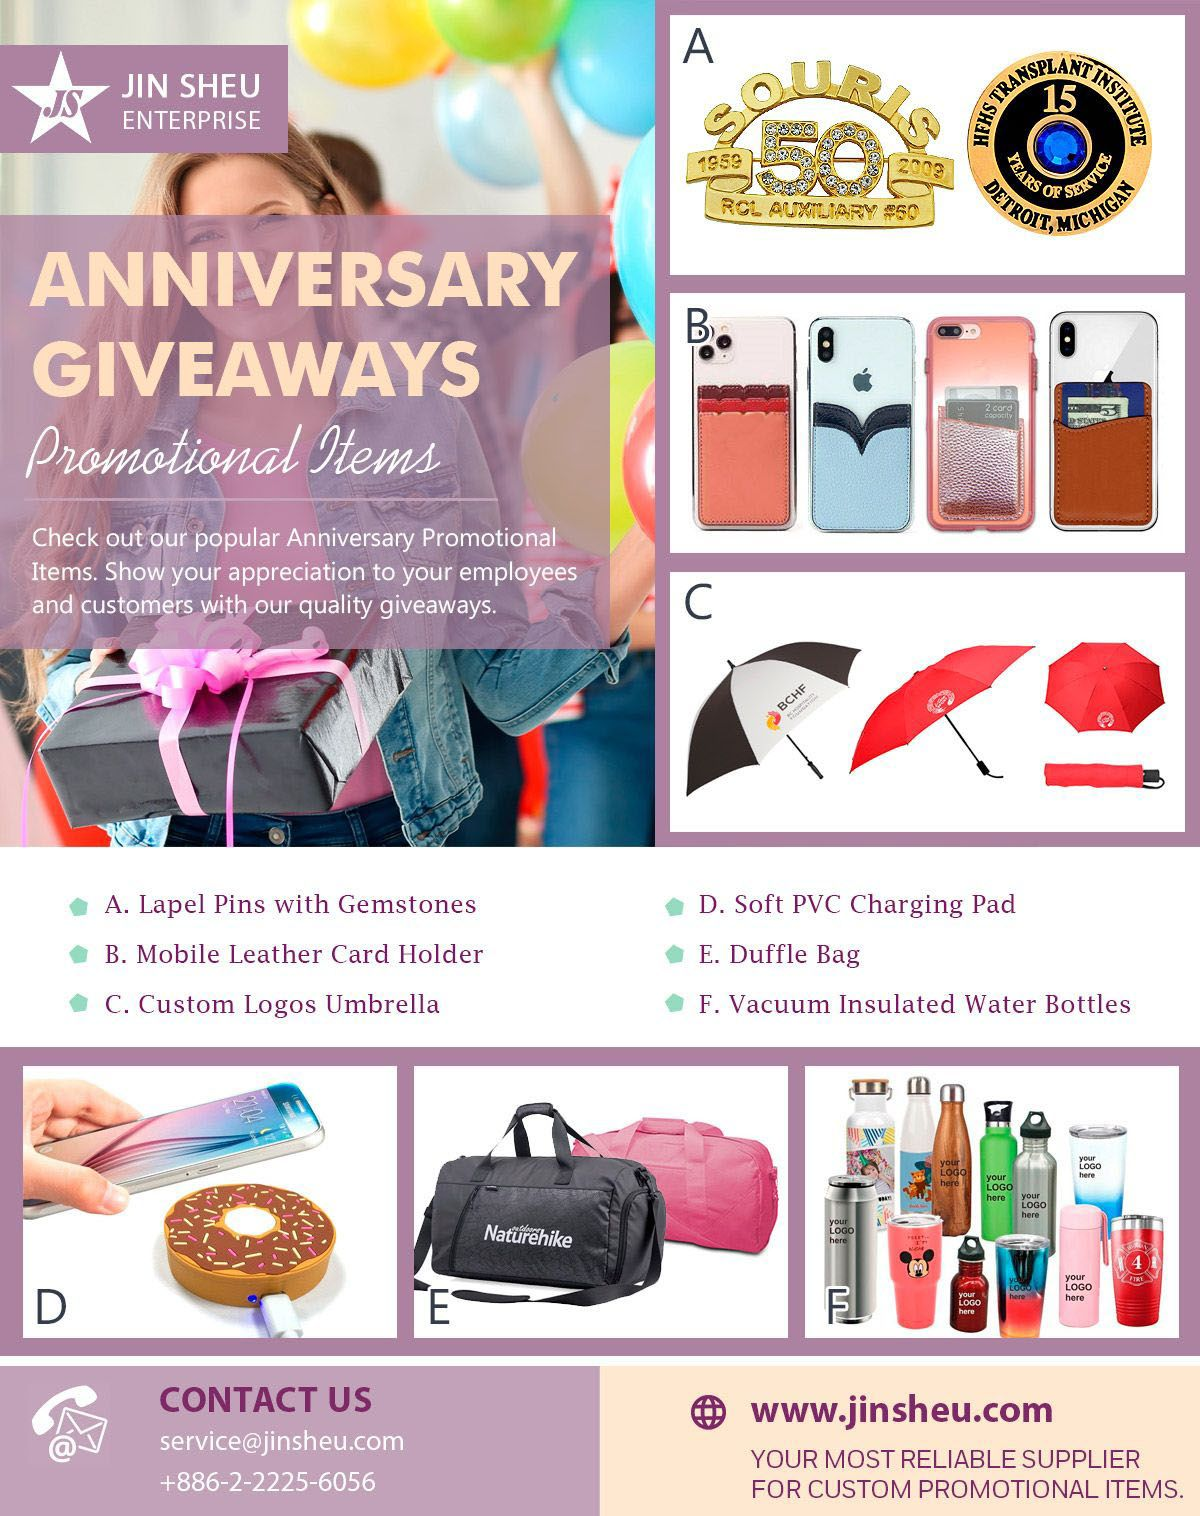 Promotional Items for Anniversary Giveaways